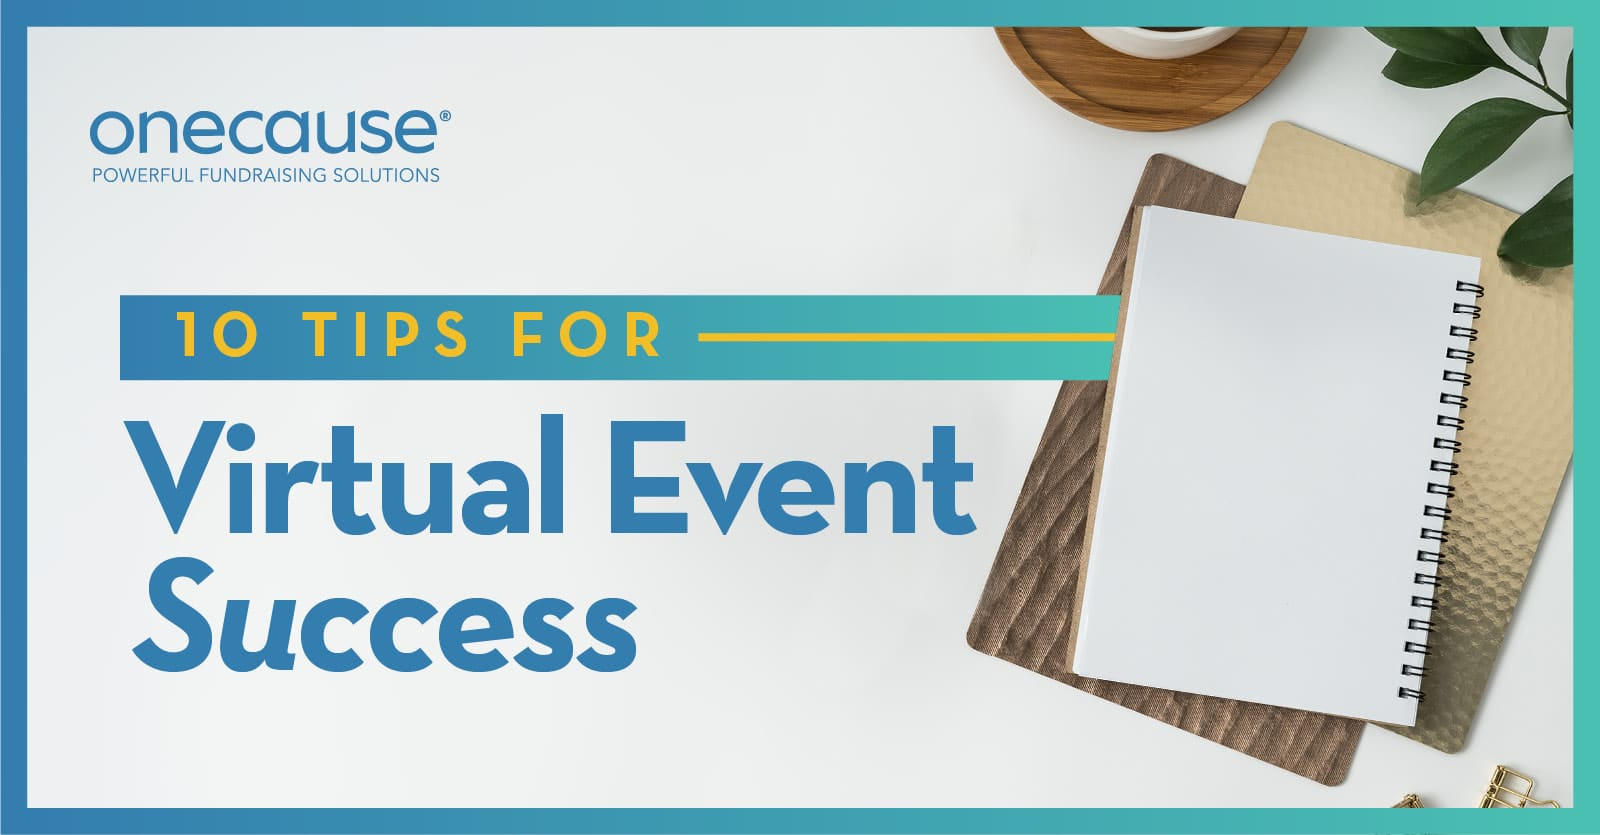 Ten Tips for Virtual Event Success